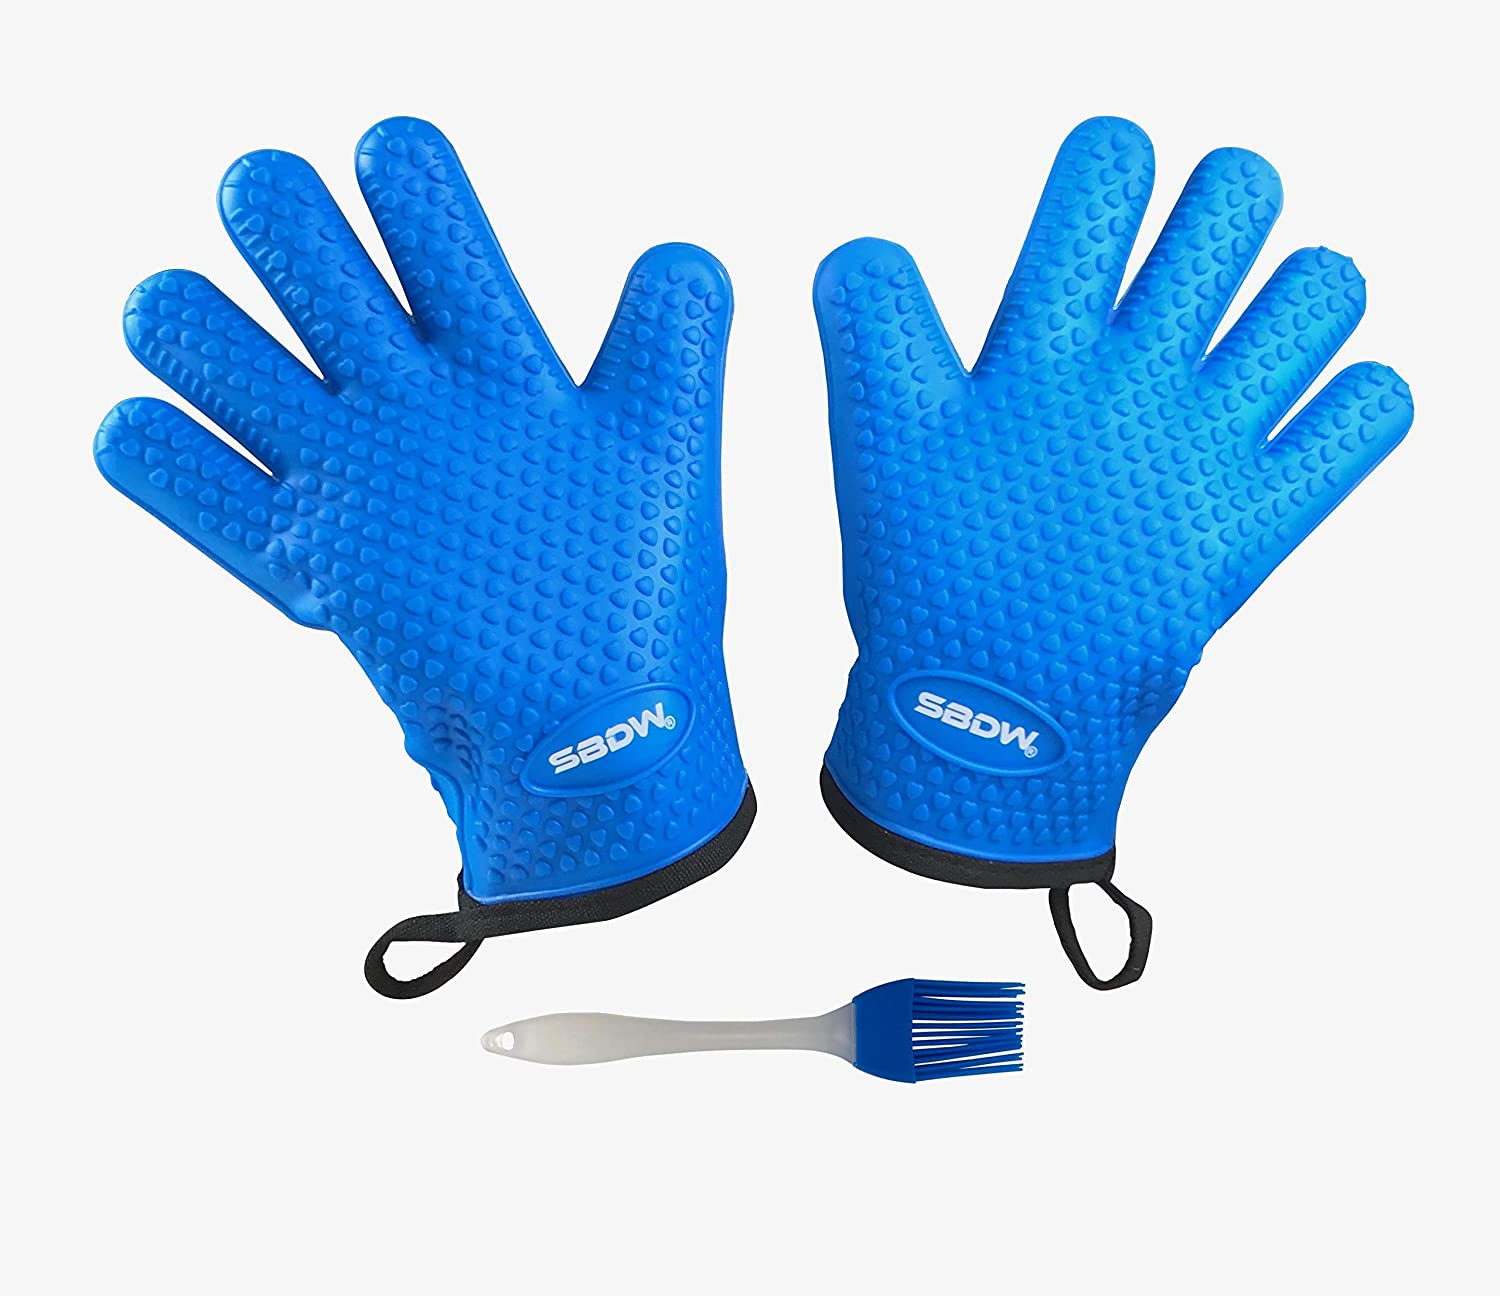 Heat Resistant BBQ Cooking Gloves - Plus Grill Brush & E-Book For Grilling. 3 Items Total: Oven Mitts With Protective Lining, Matching Color Grill Brush, & E-Book Of BBQ Recipes - By SBDW.